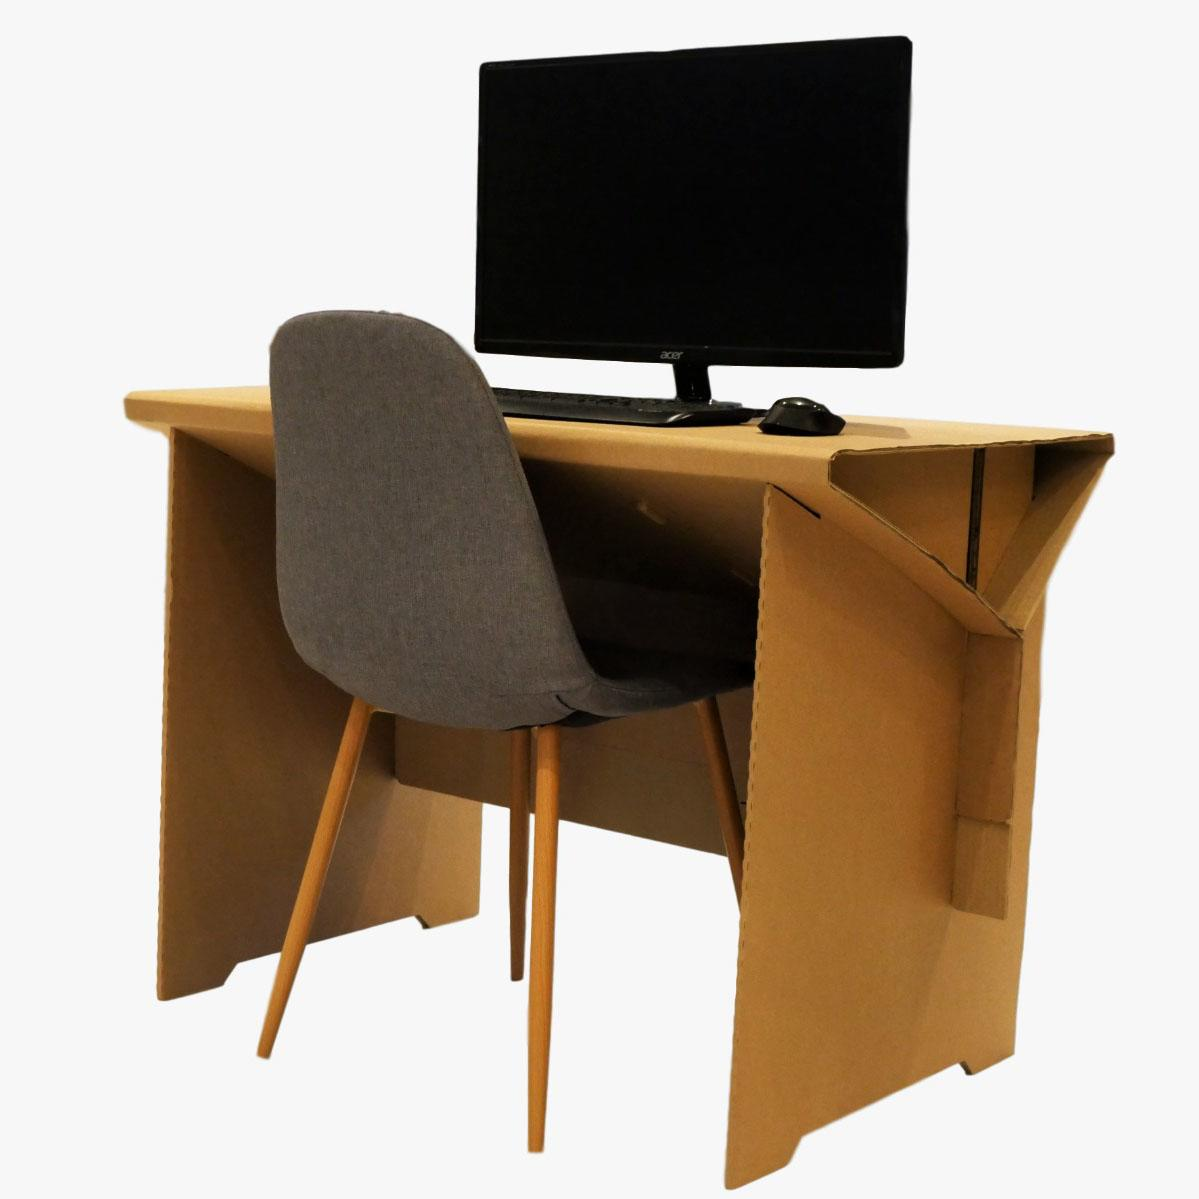 Cardboard Desk with Integral Cable Tidy